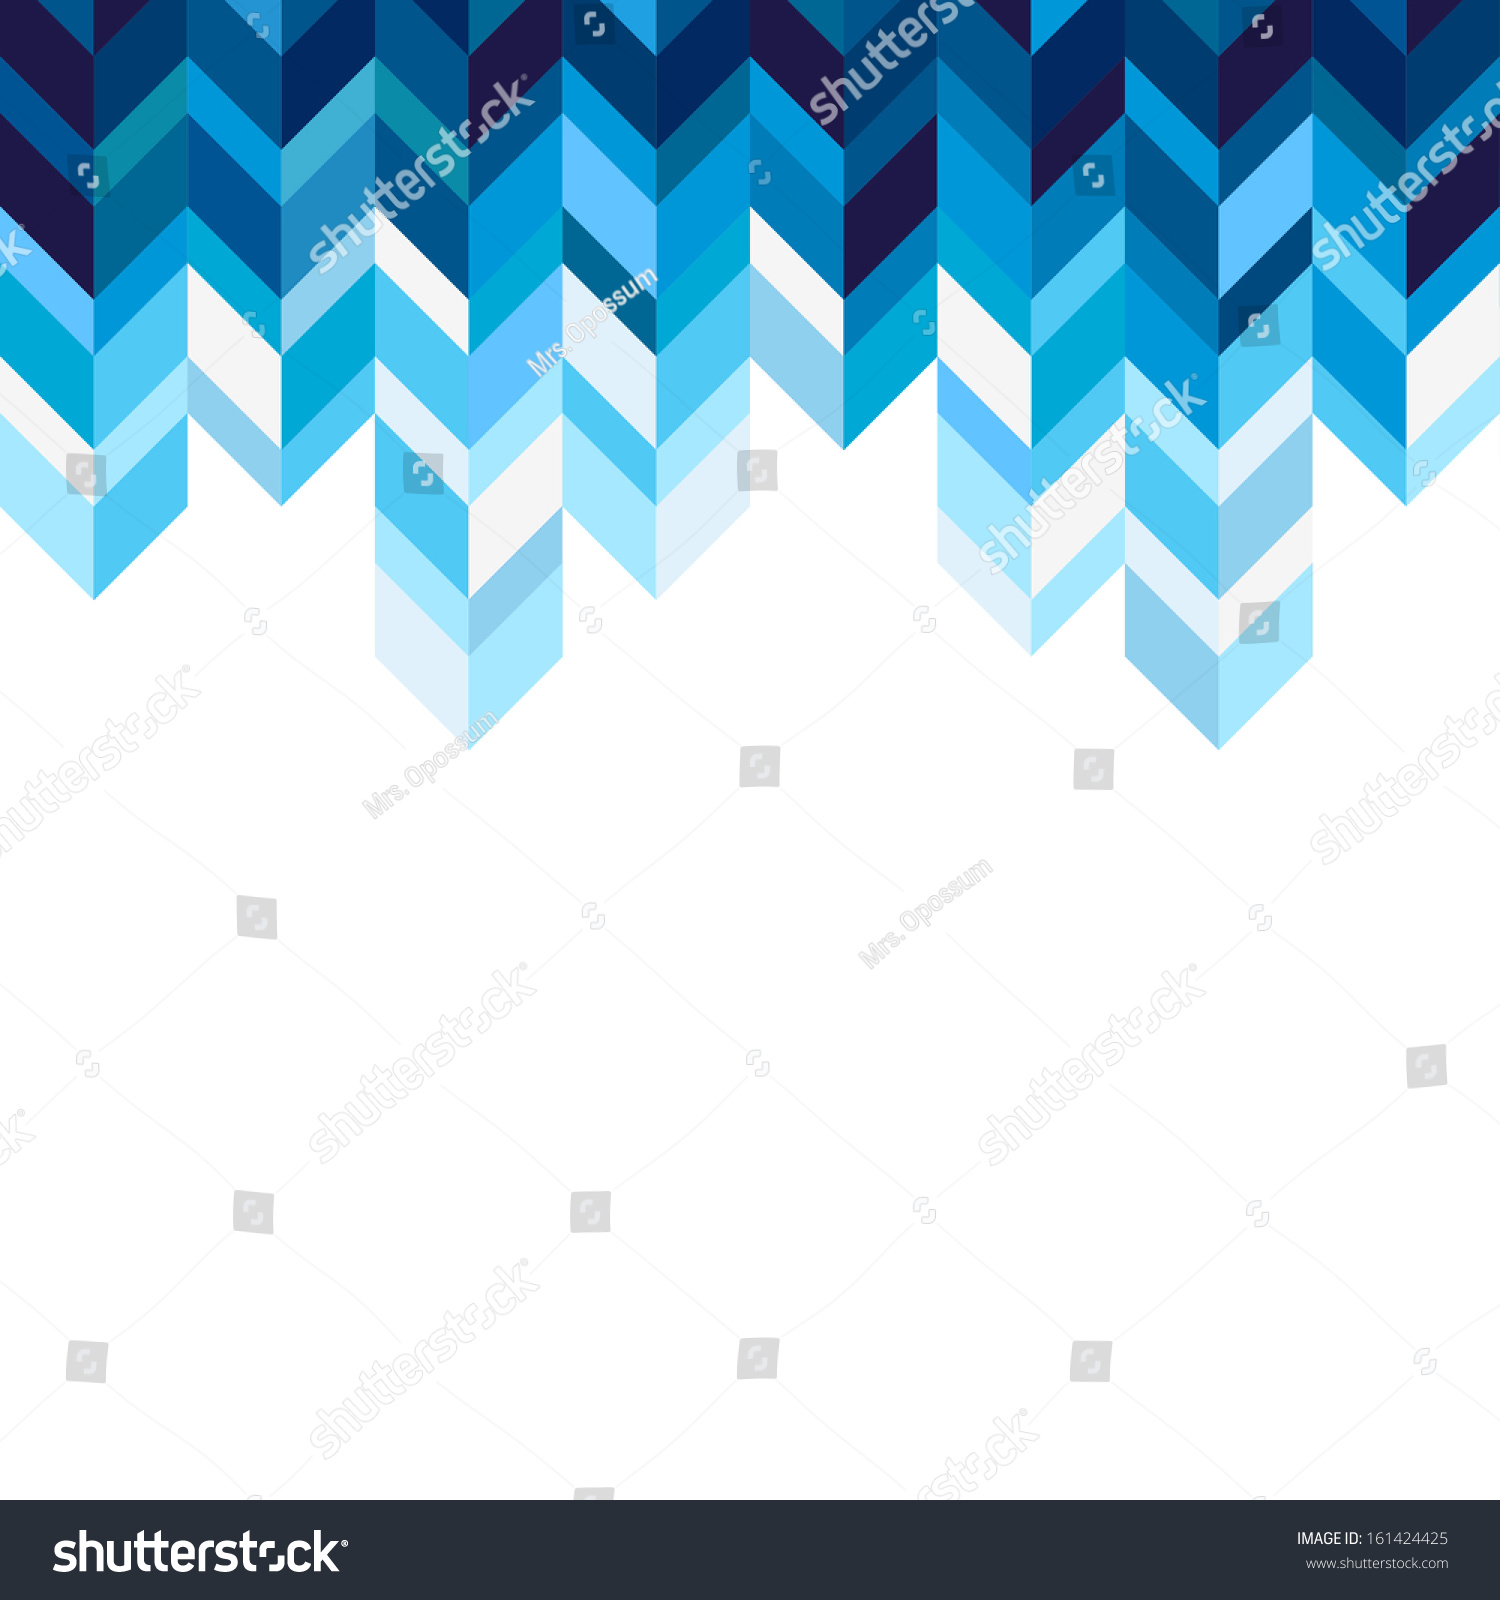 stock vector geometric background - photo #13